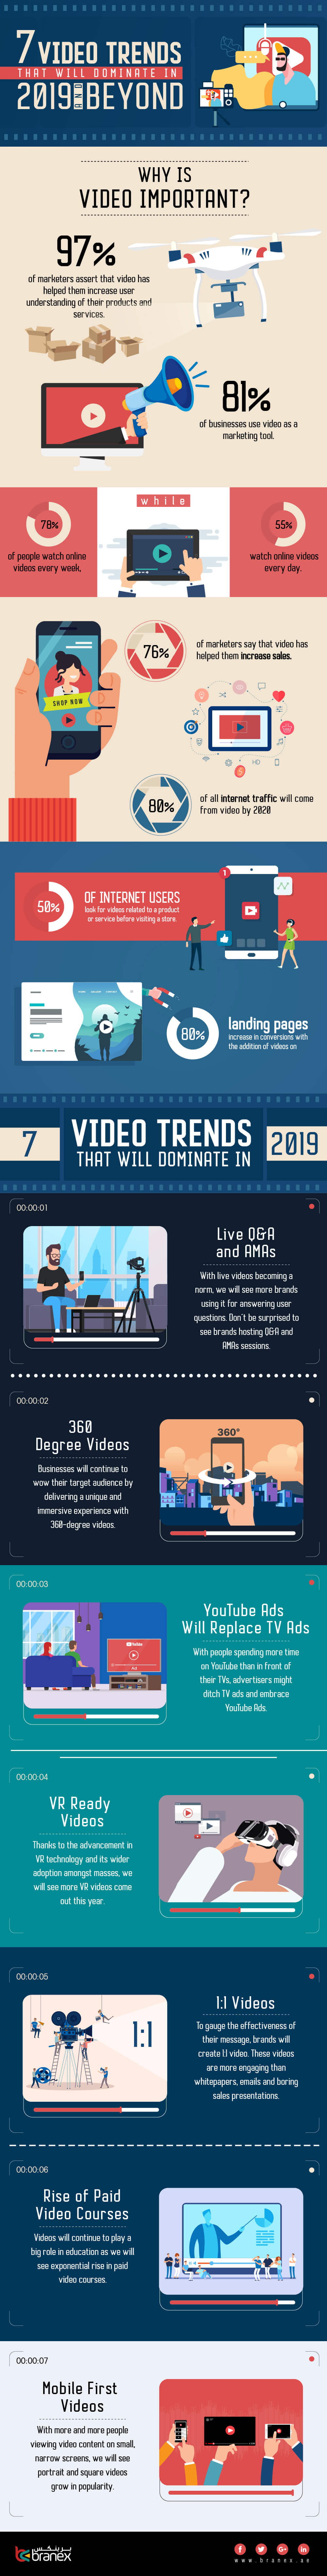 Video Trends in 2019